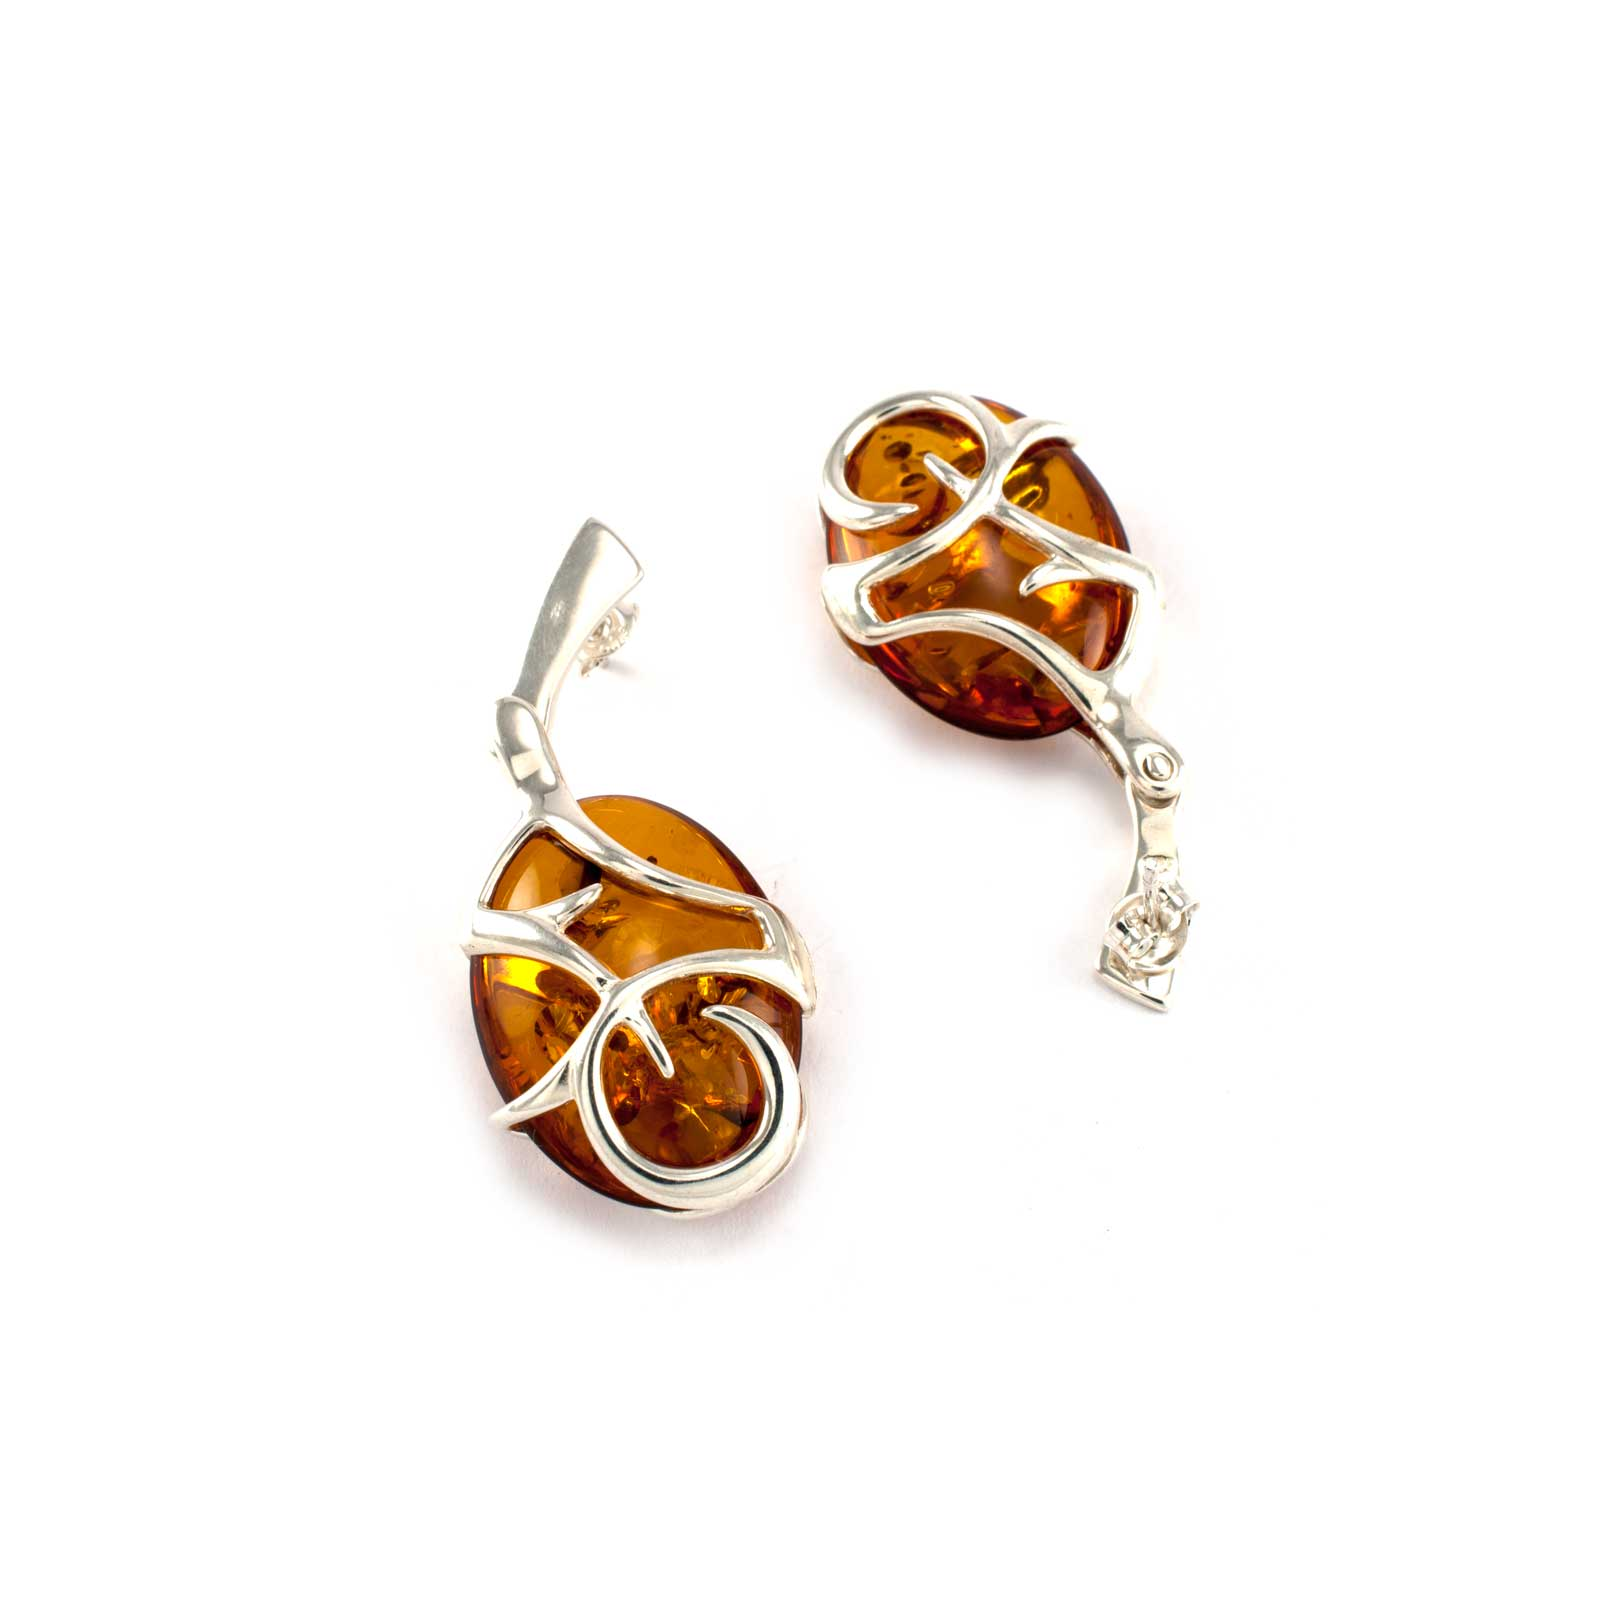 Azure Earrings in Sterling Silver and Cognac Amber